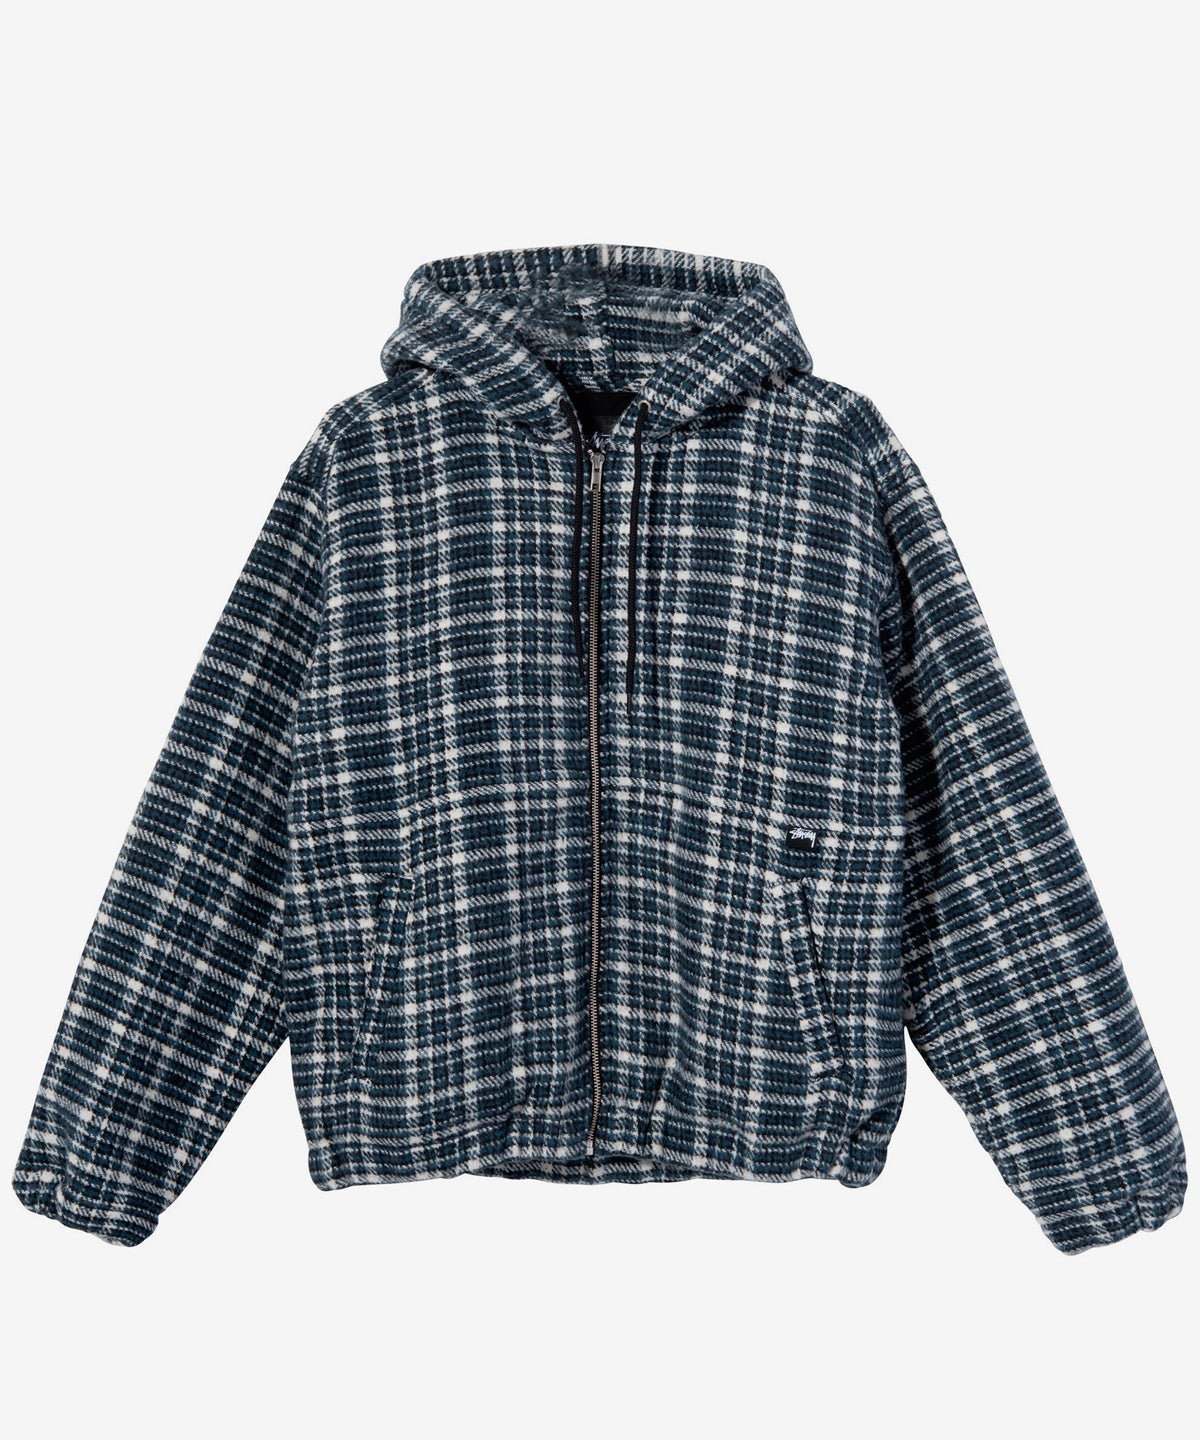 Image of STUSSY_FLANNEL WORK JACKET